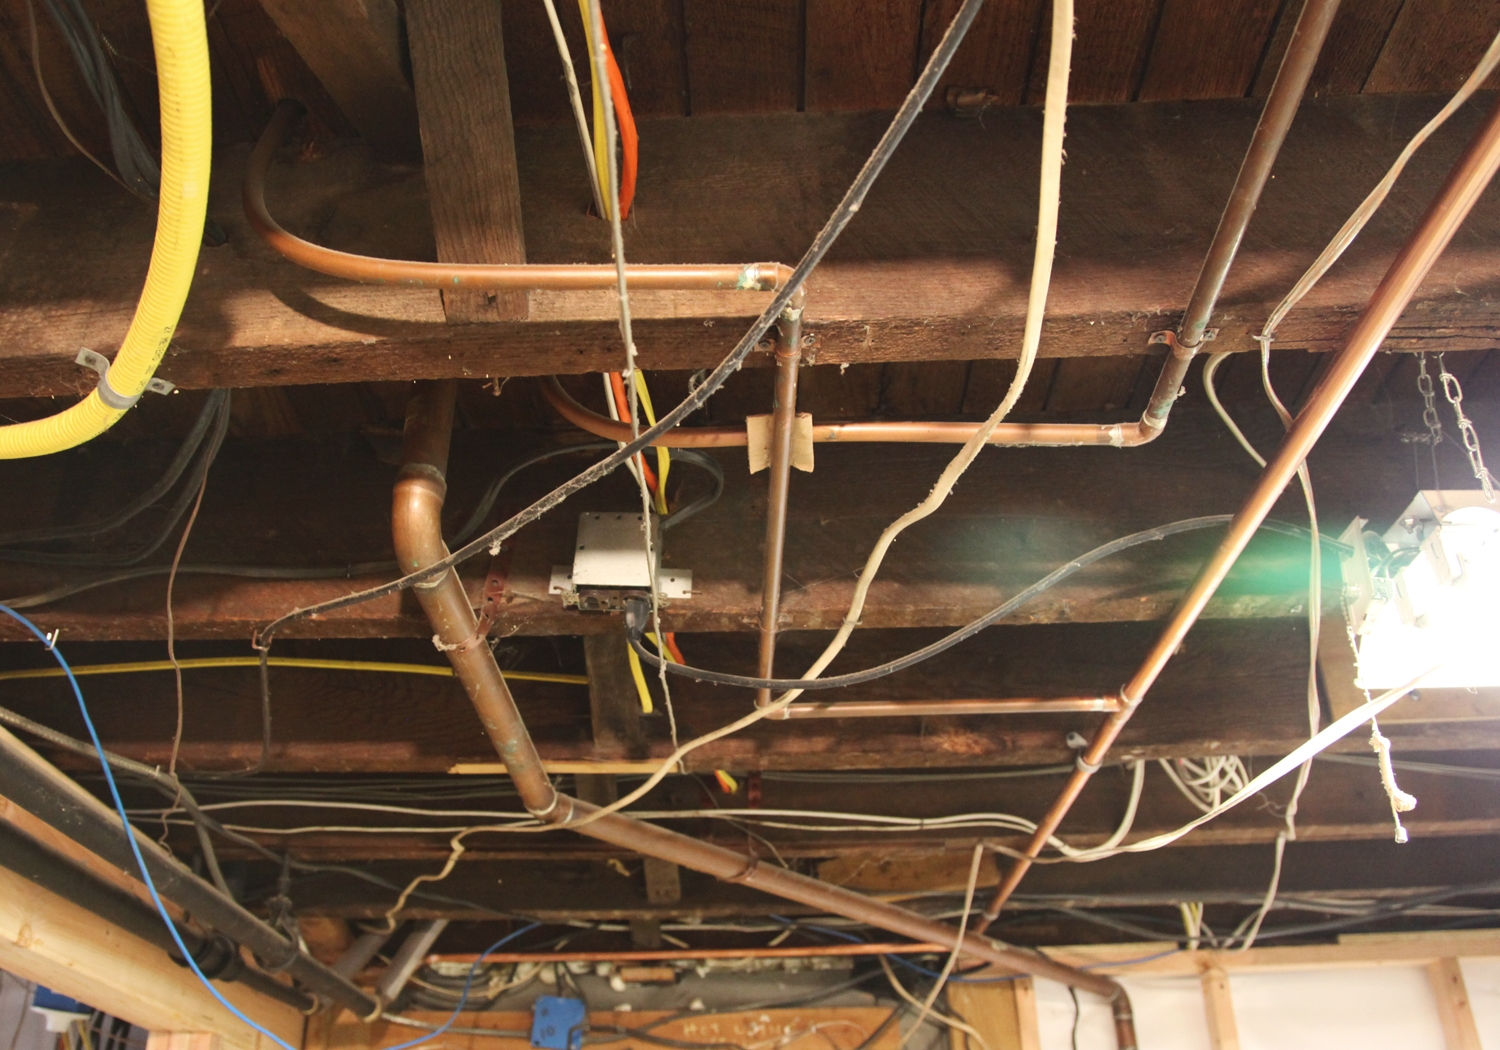 Electrical Wiring Basement Ceiling